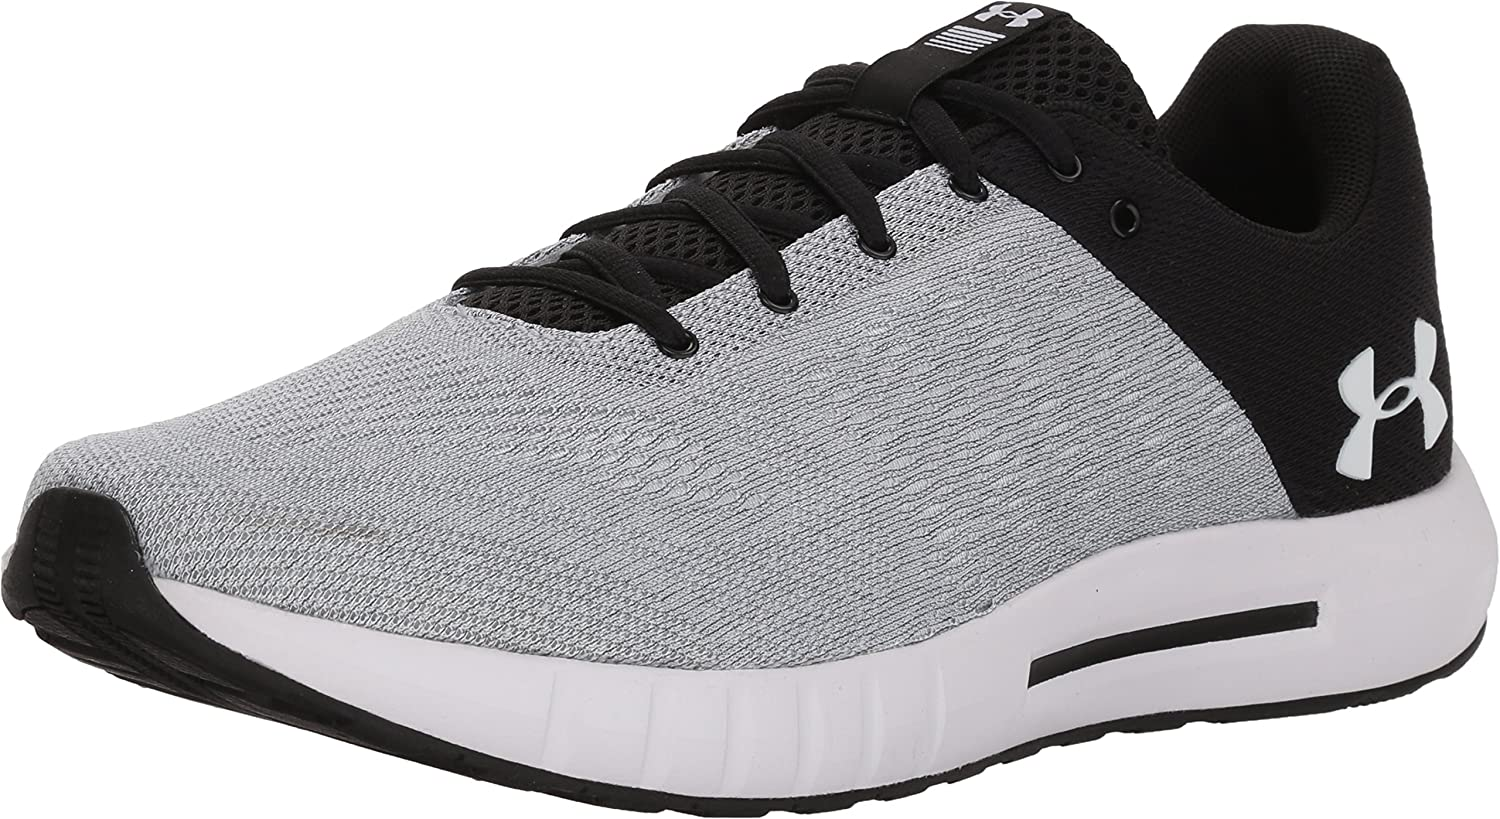 d0932540ed Under Armour Men s Ua Micro G Pursuit Running Shoes  Buy Online at Low  Prices in India - Amazon.in